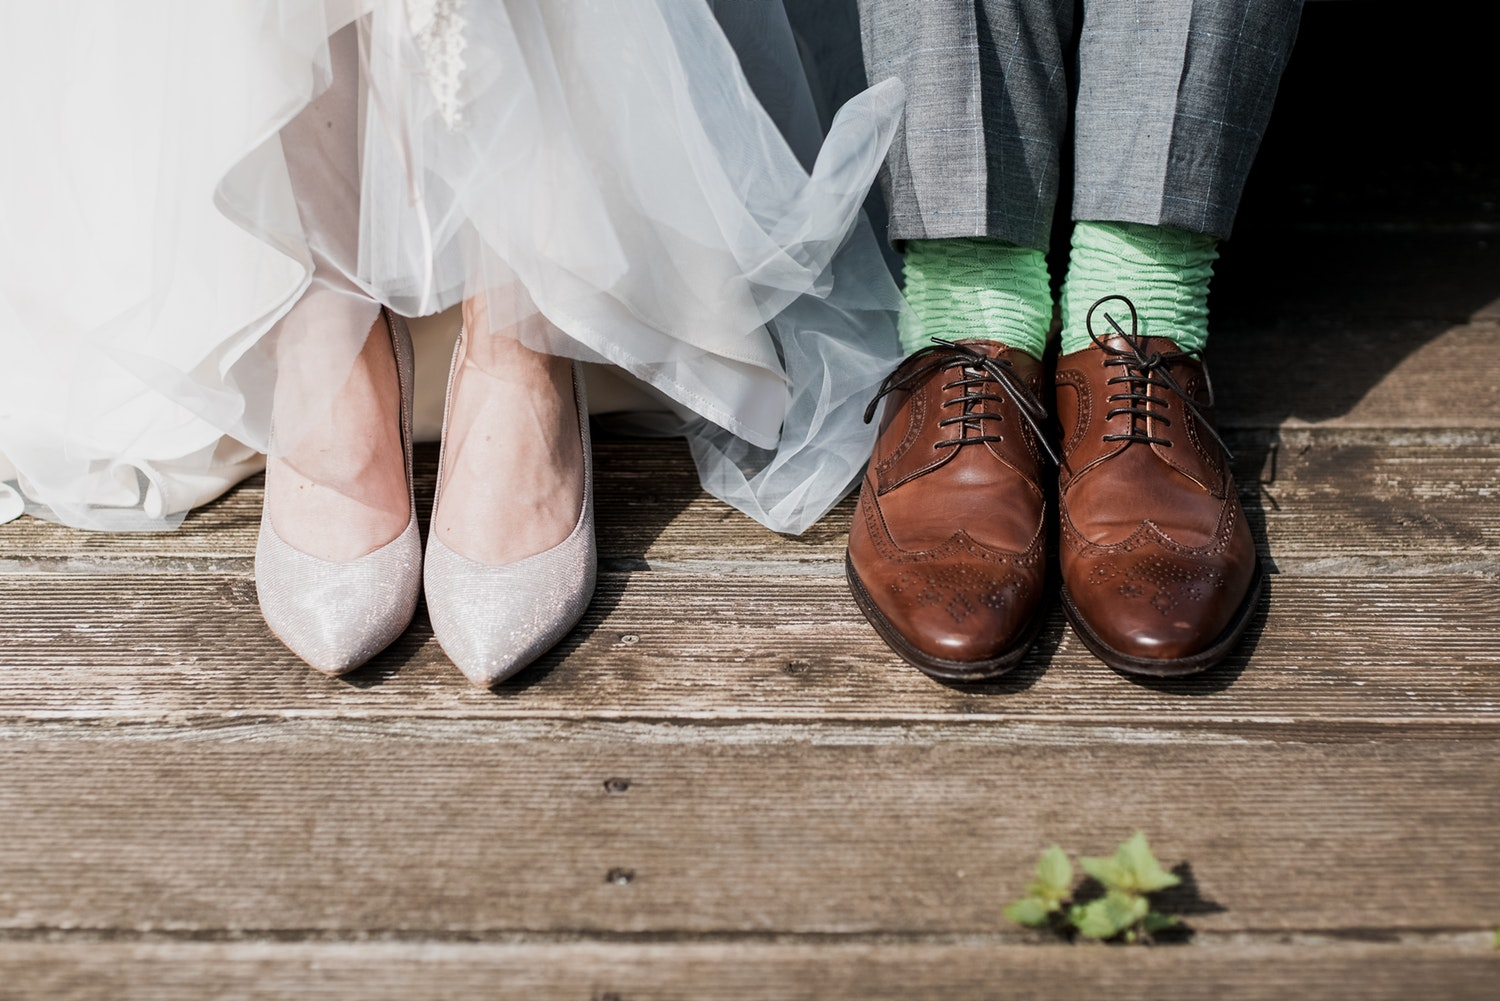 Pairs of men's and women's wedding shoes